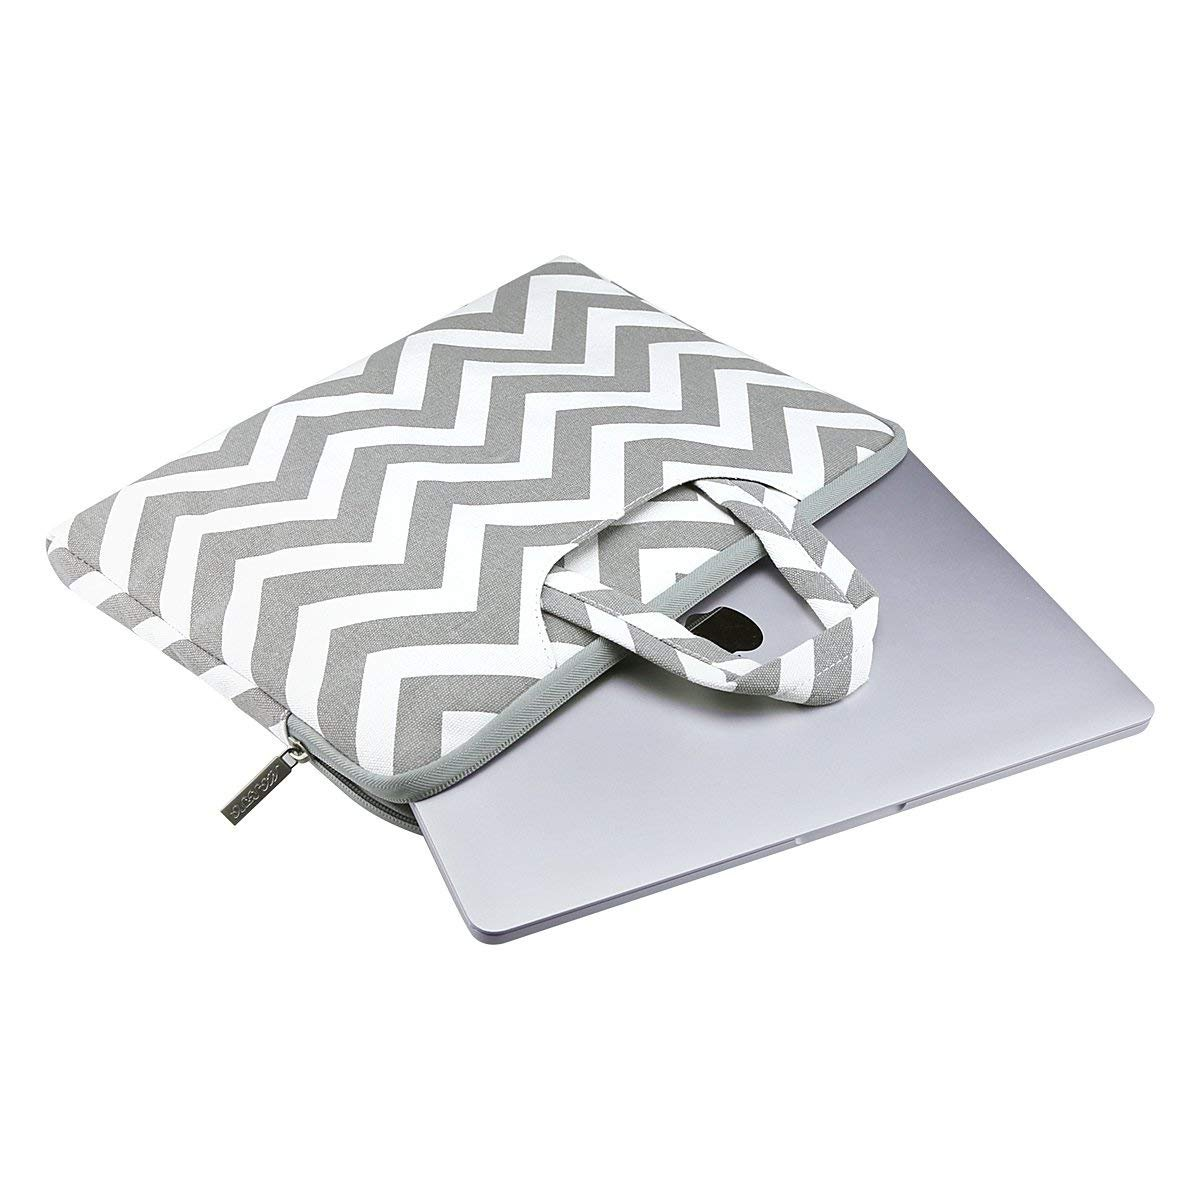 MOSISO Laptop Briefcase Handbag Compatible 13-13.3 Inch MacBook Pro, MacBook Air, Notebook Computer, Chevron Style Canvas Fabric Carrying Sleeve Case Cover Bag, Gray by MOSISO (Image #2)